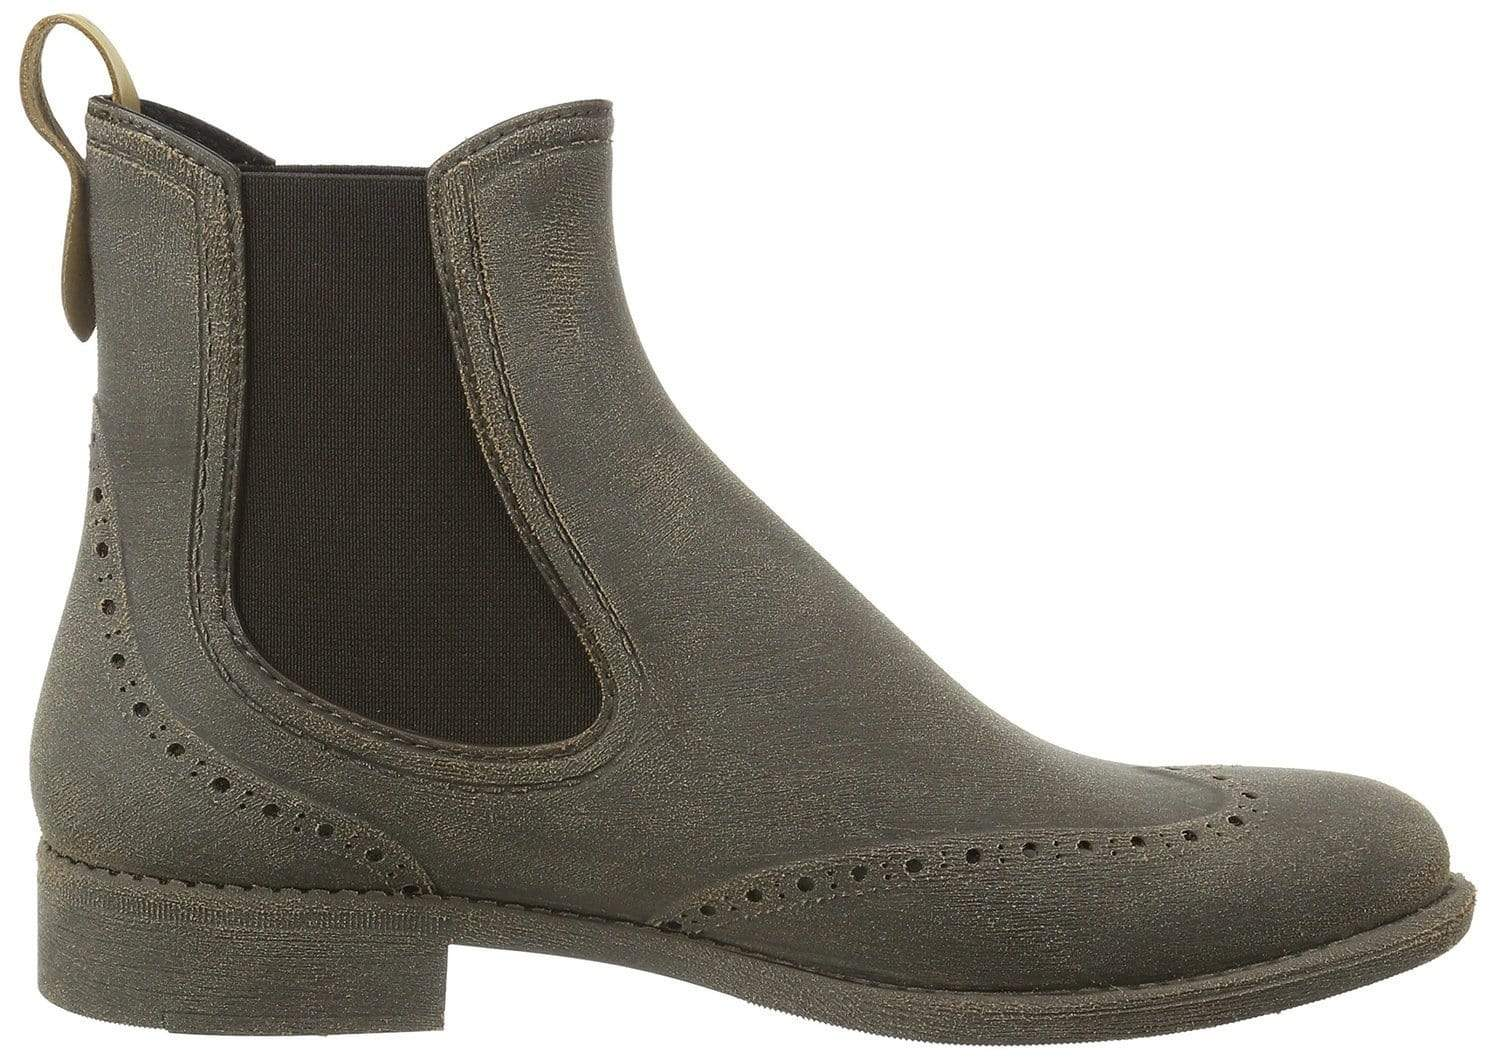 NAT 2 shoe Rugged Prime Chelsea Rain Boots. Rubber and Recycled Leather. sustainable fashion ethical fashion